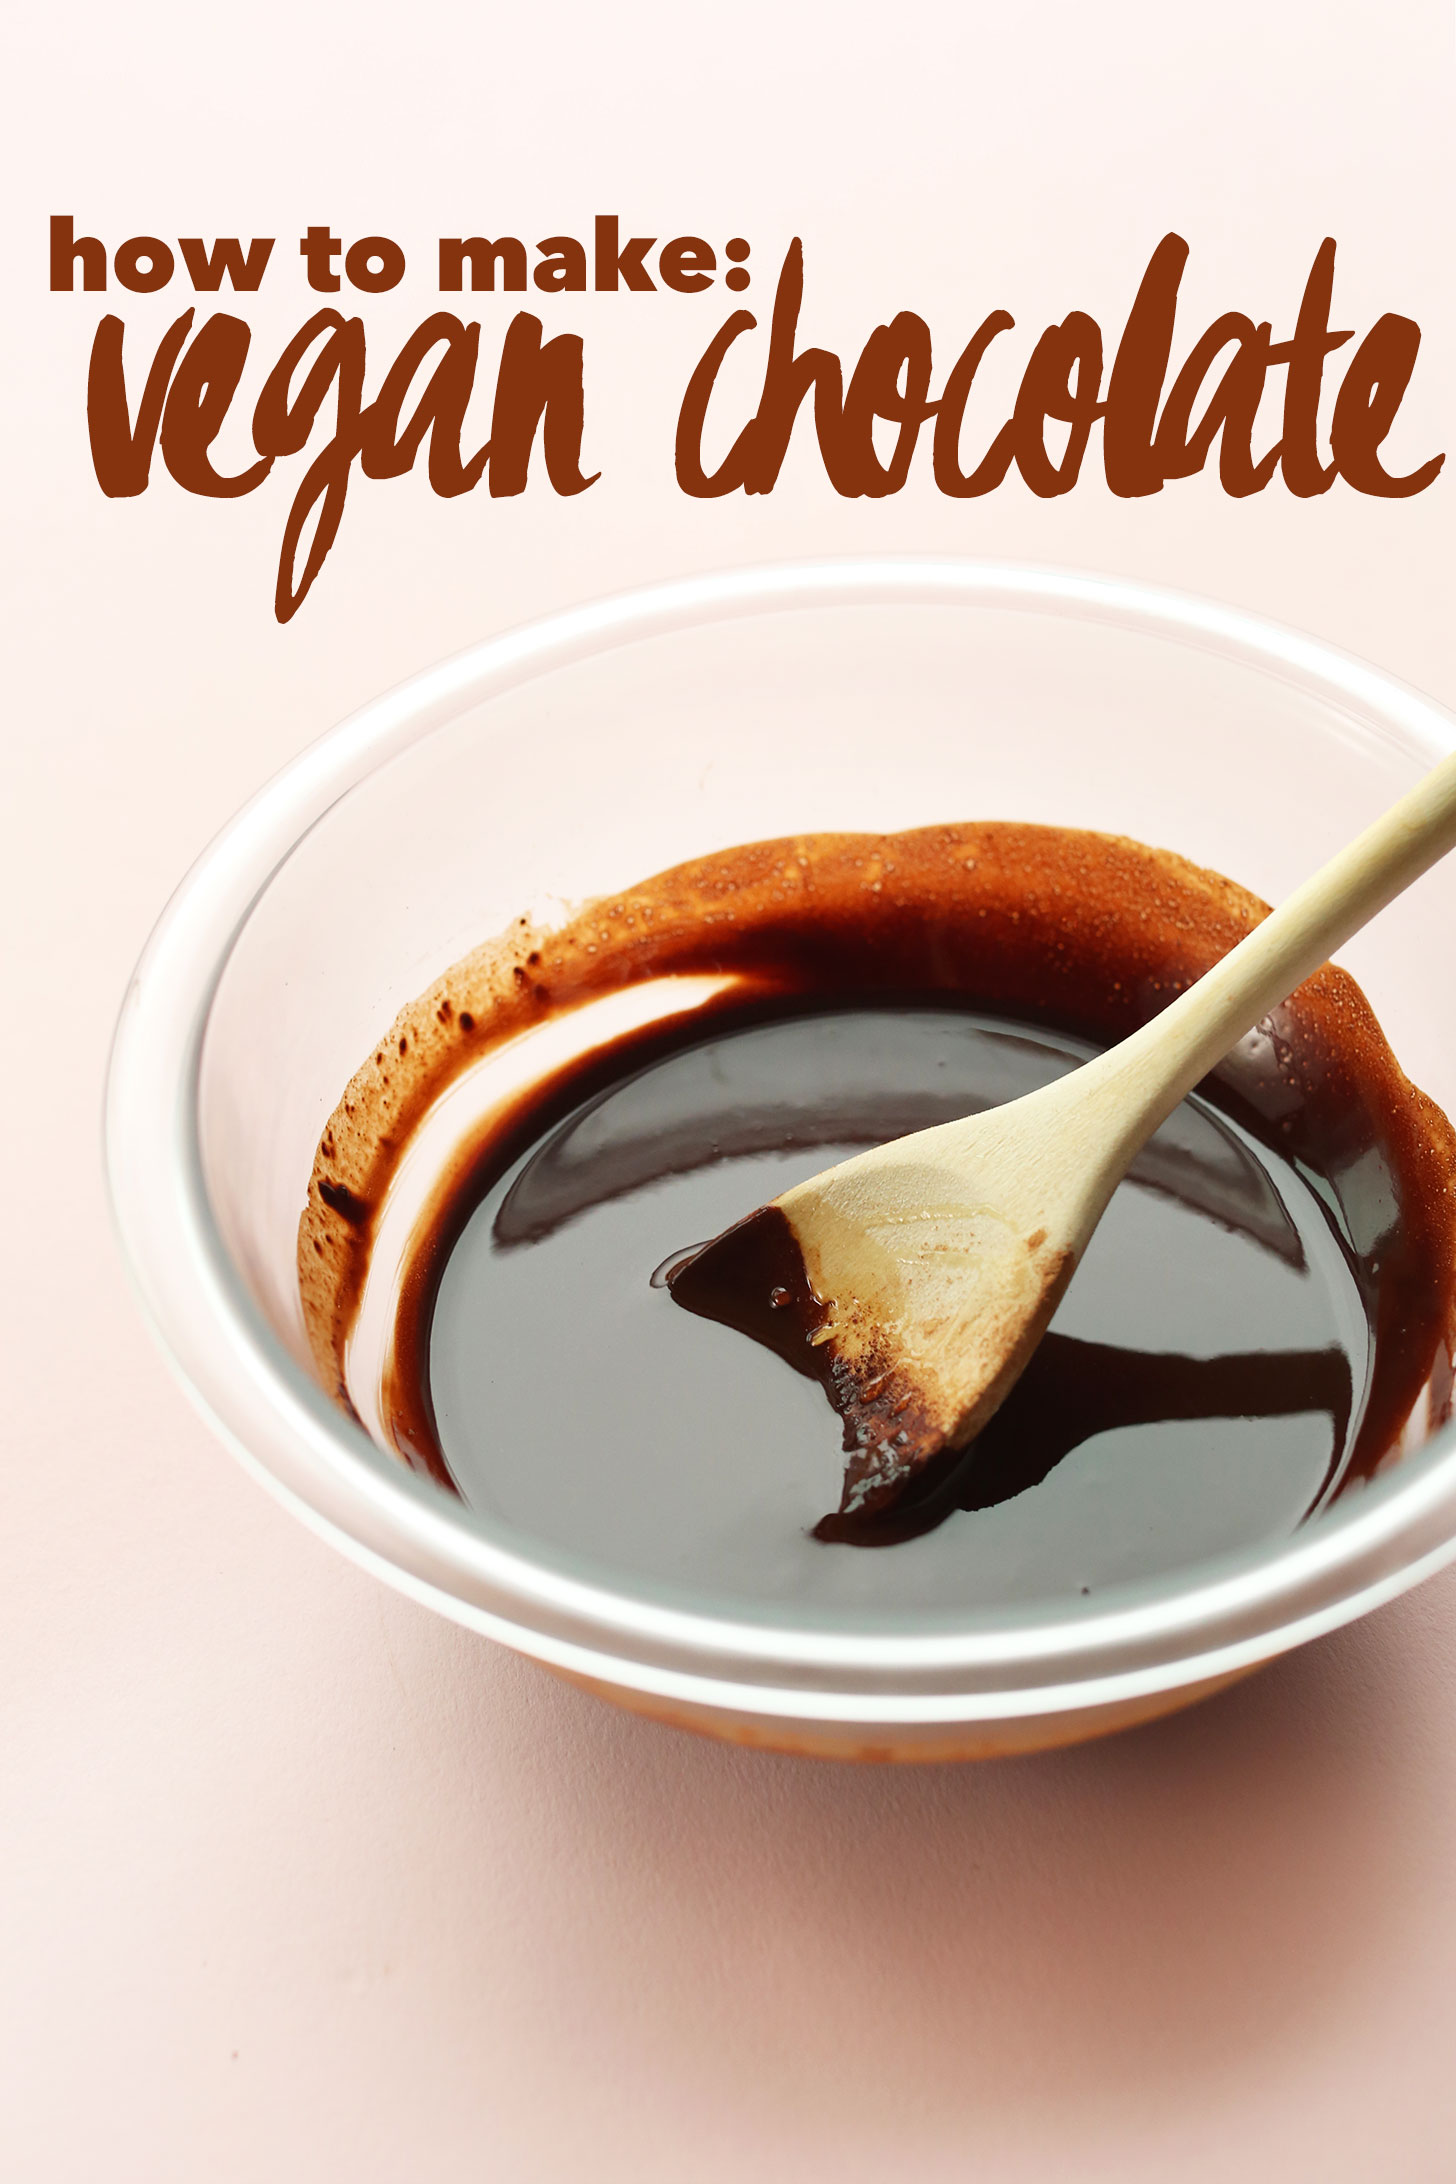 Bowl of our creamy and smooth homemade vegan chocoalte